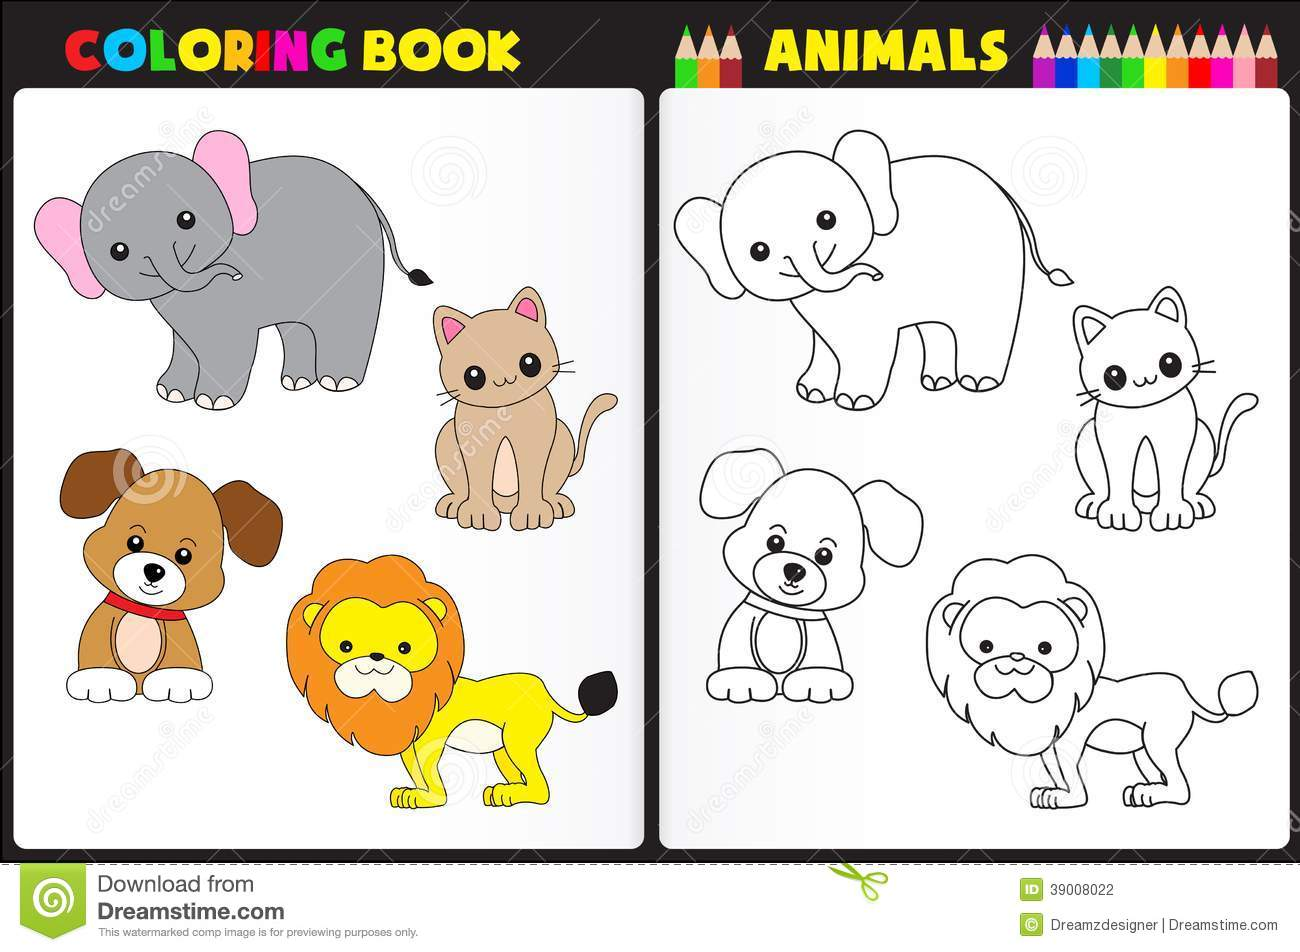 coloring book animals stock vector illustration of lion 39008022 - Coloring Book Animals